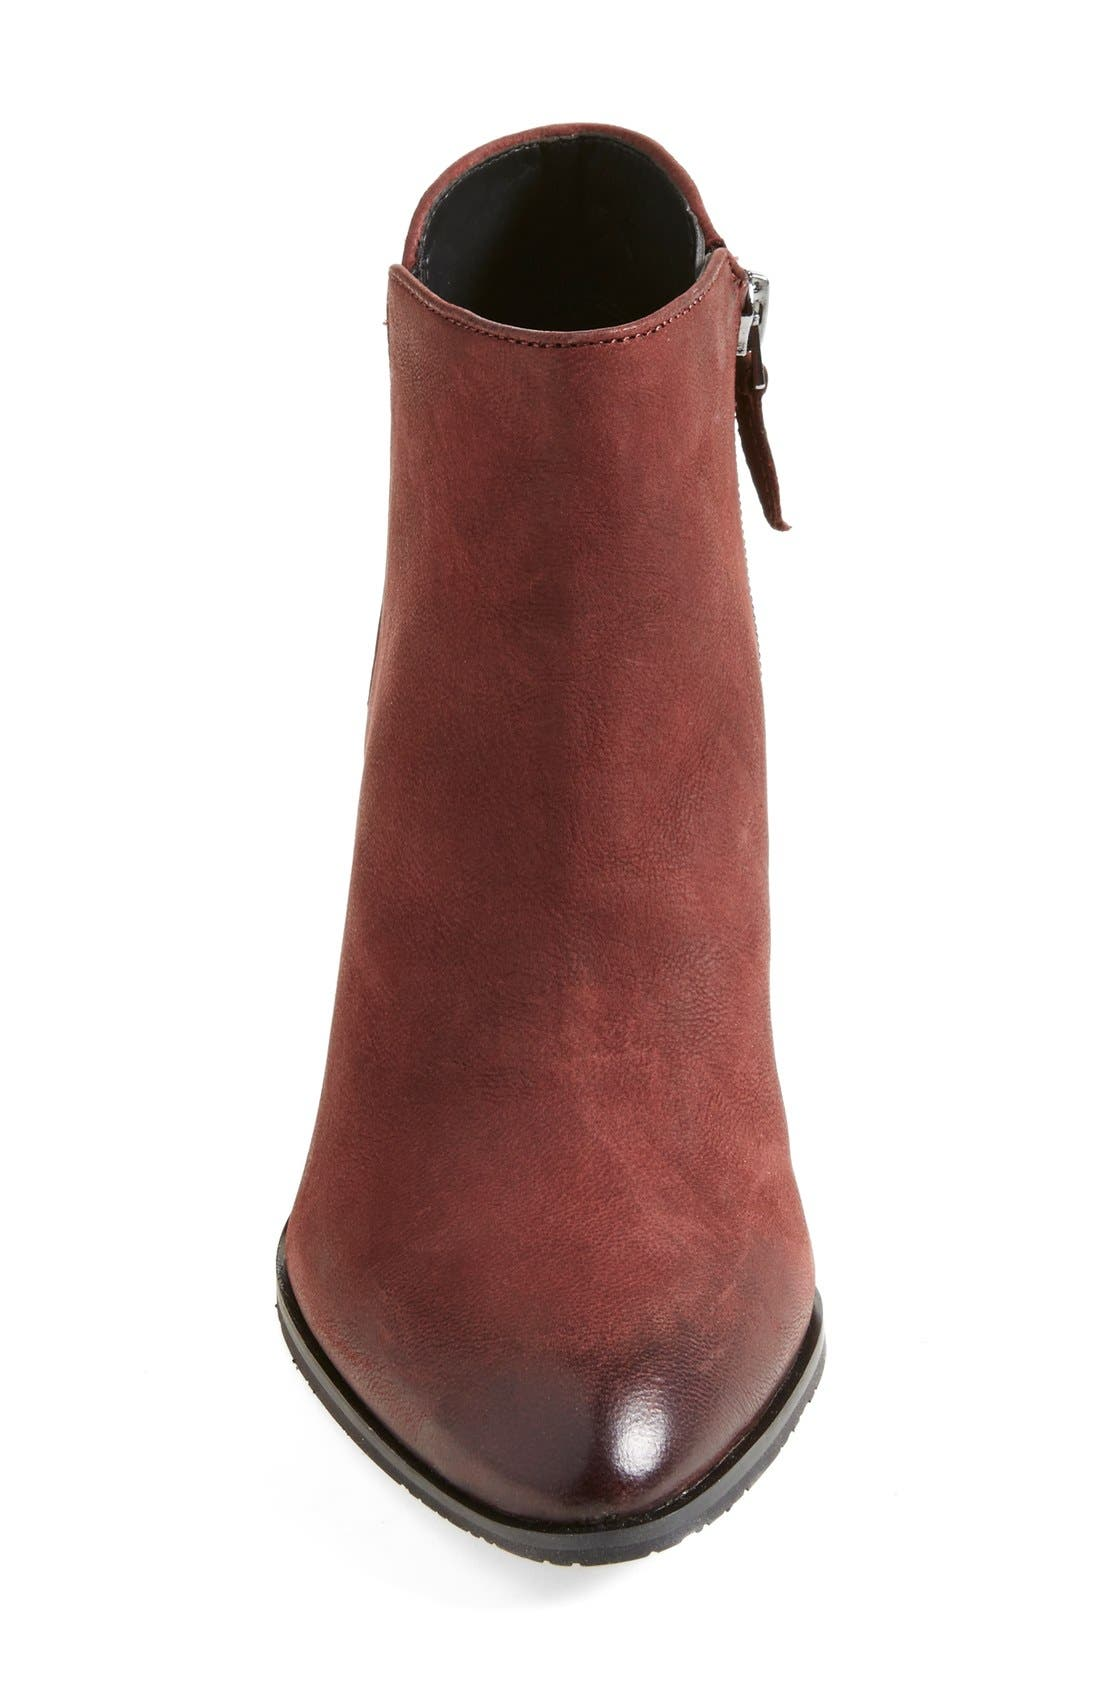 Alternate Image 3  - Franco Sarto 'Agenda' Leather Bootie (Women)